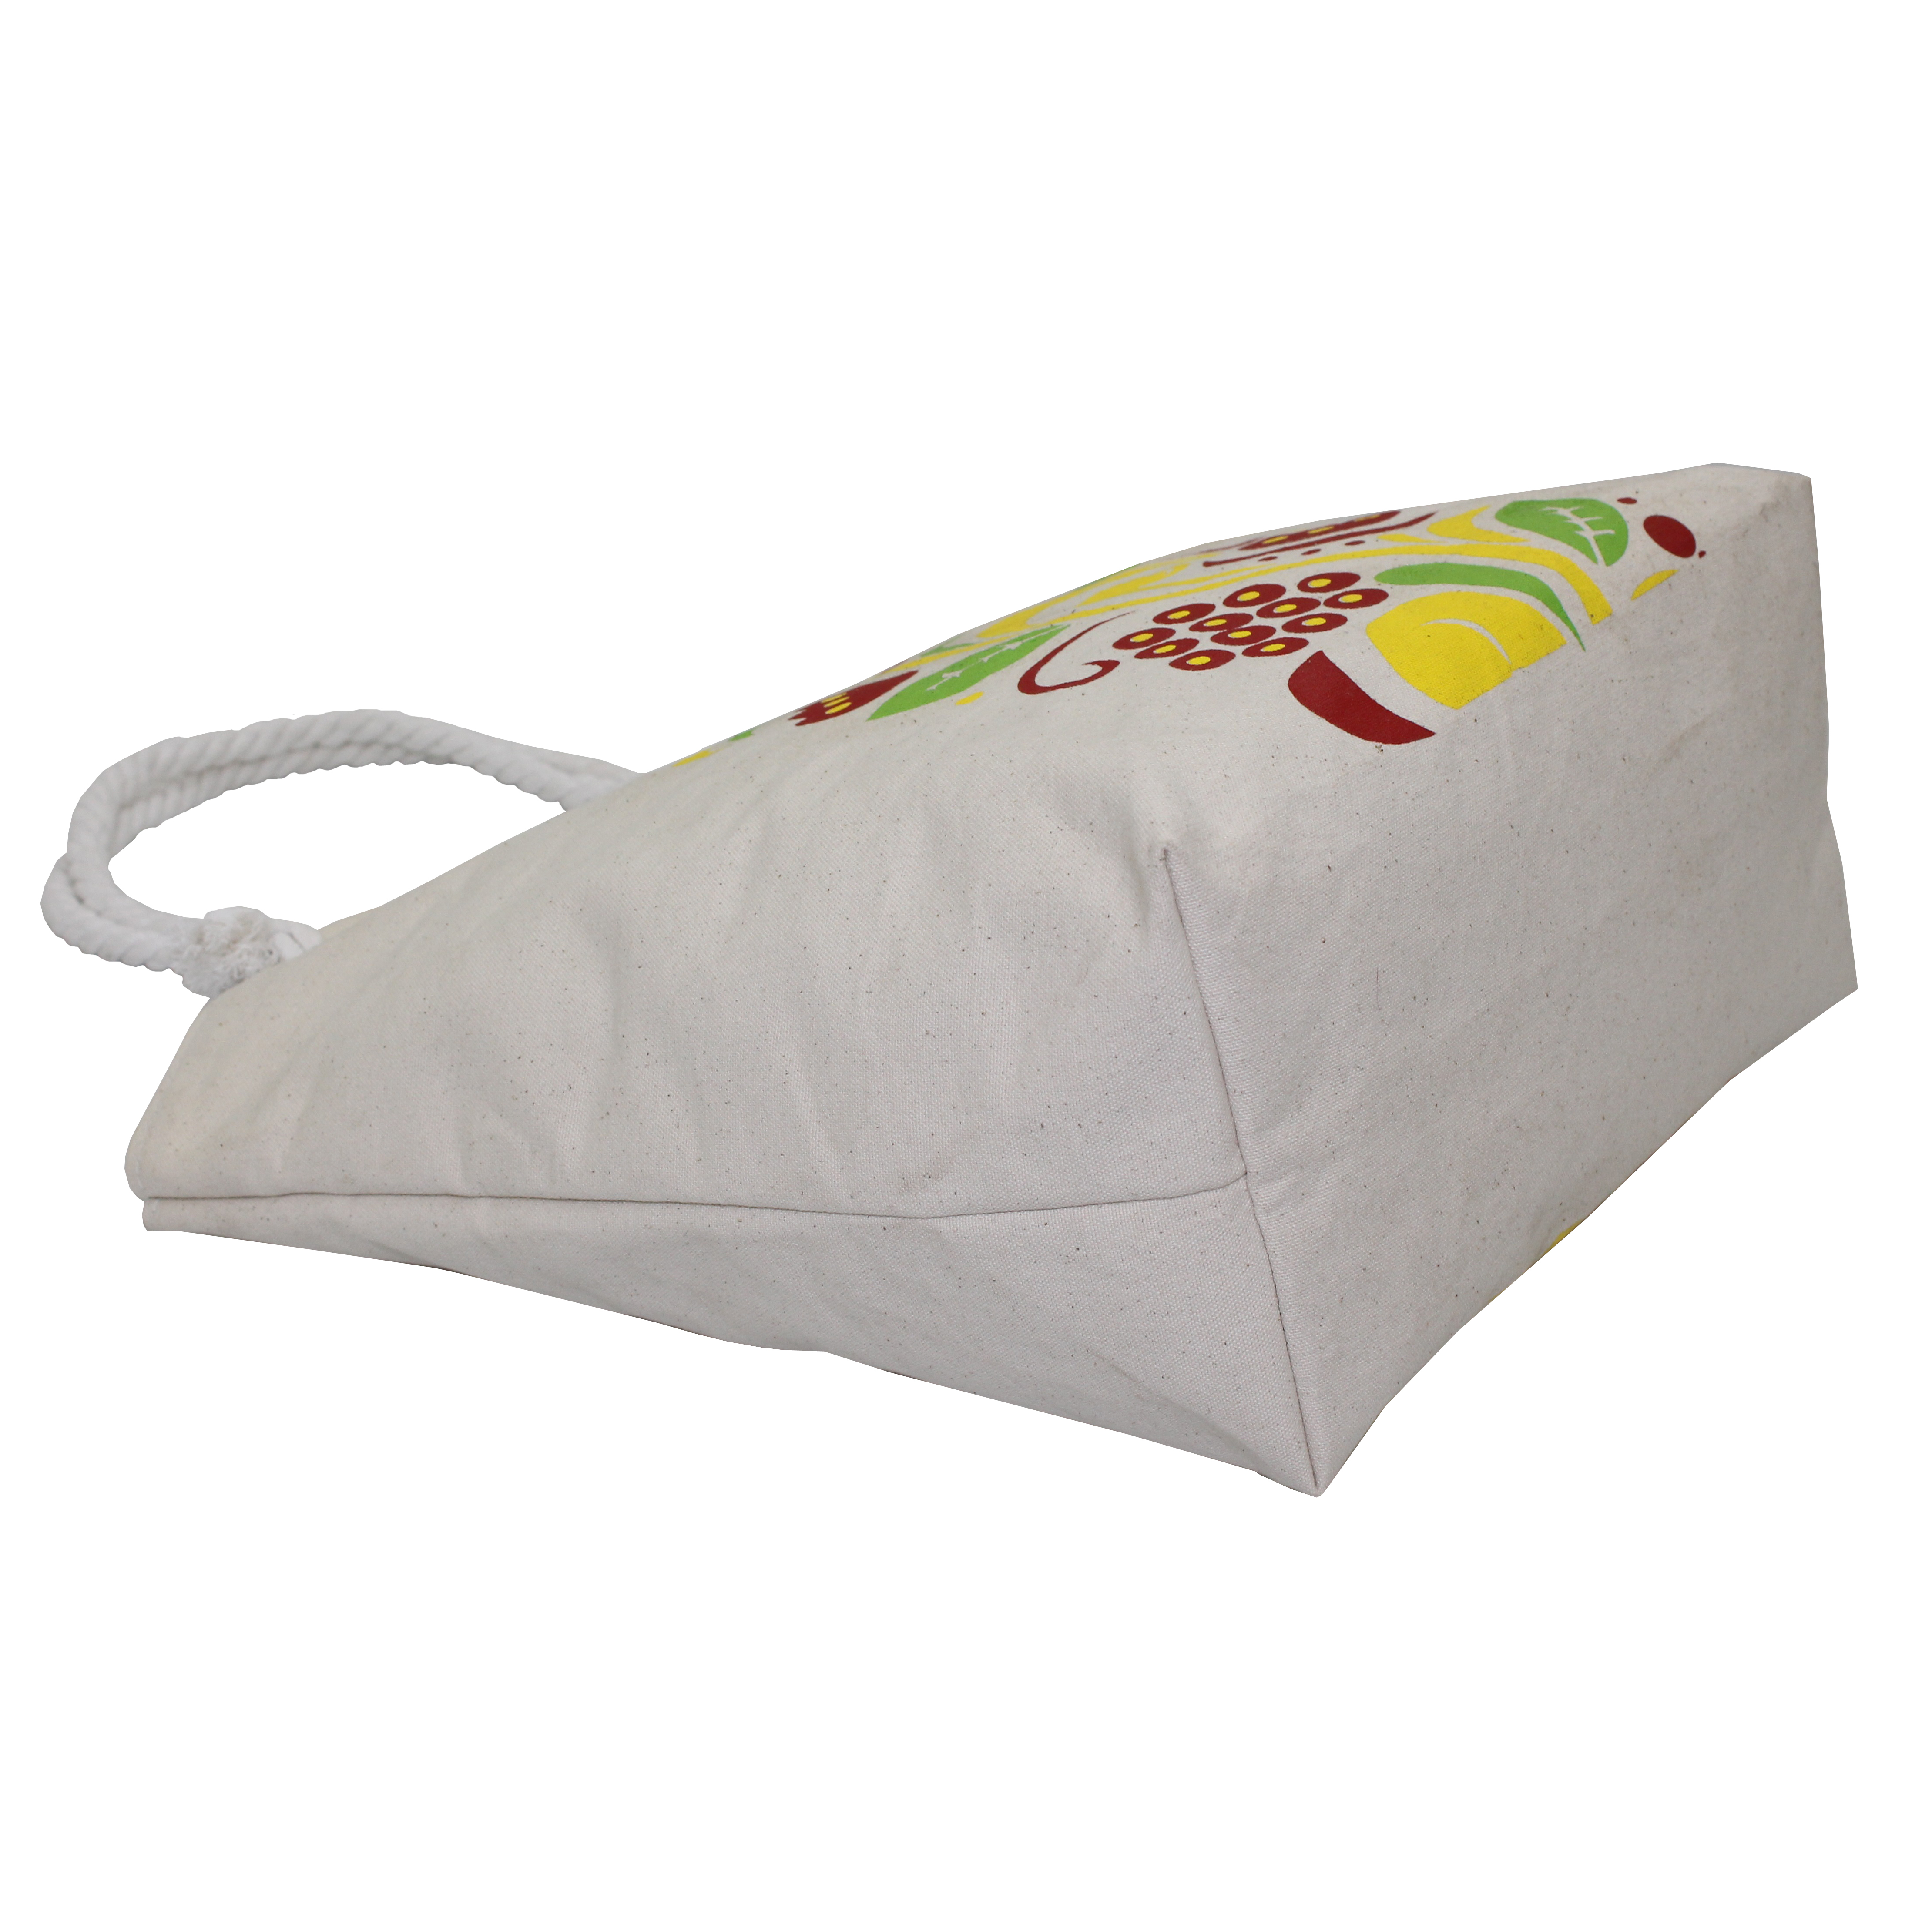 12 Oz Natural Canvas Beach Bag With Inside Lining